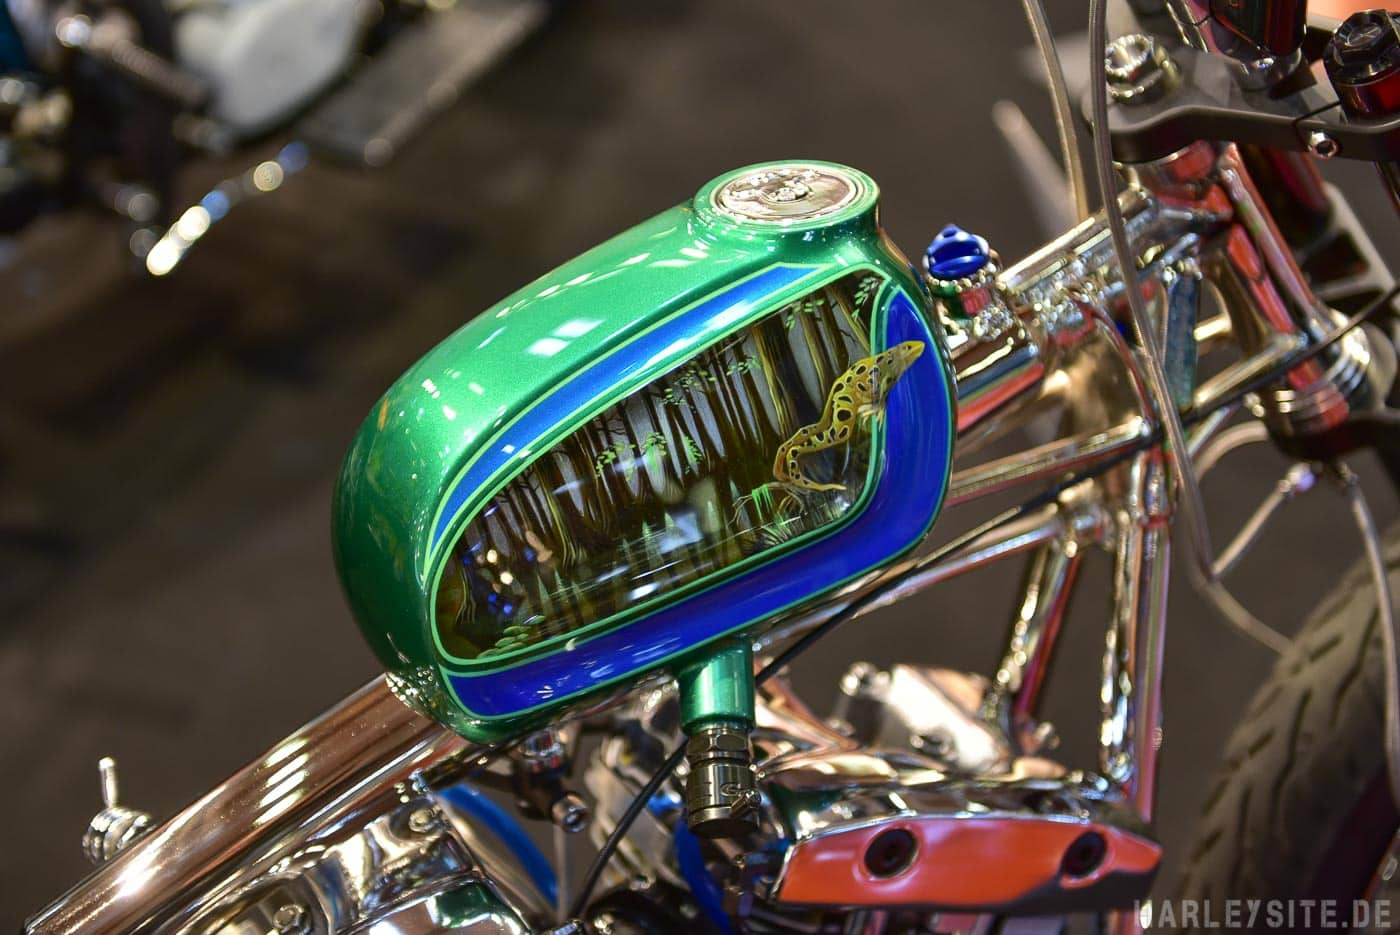 Custombike Tank auf der Custombike Show